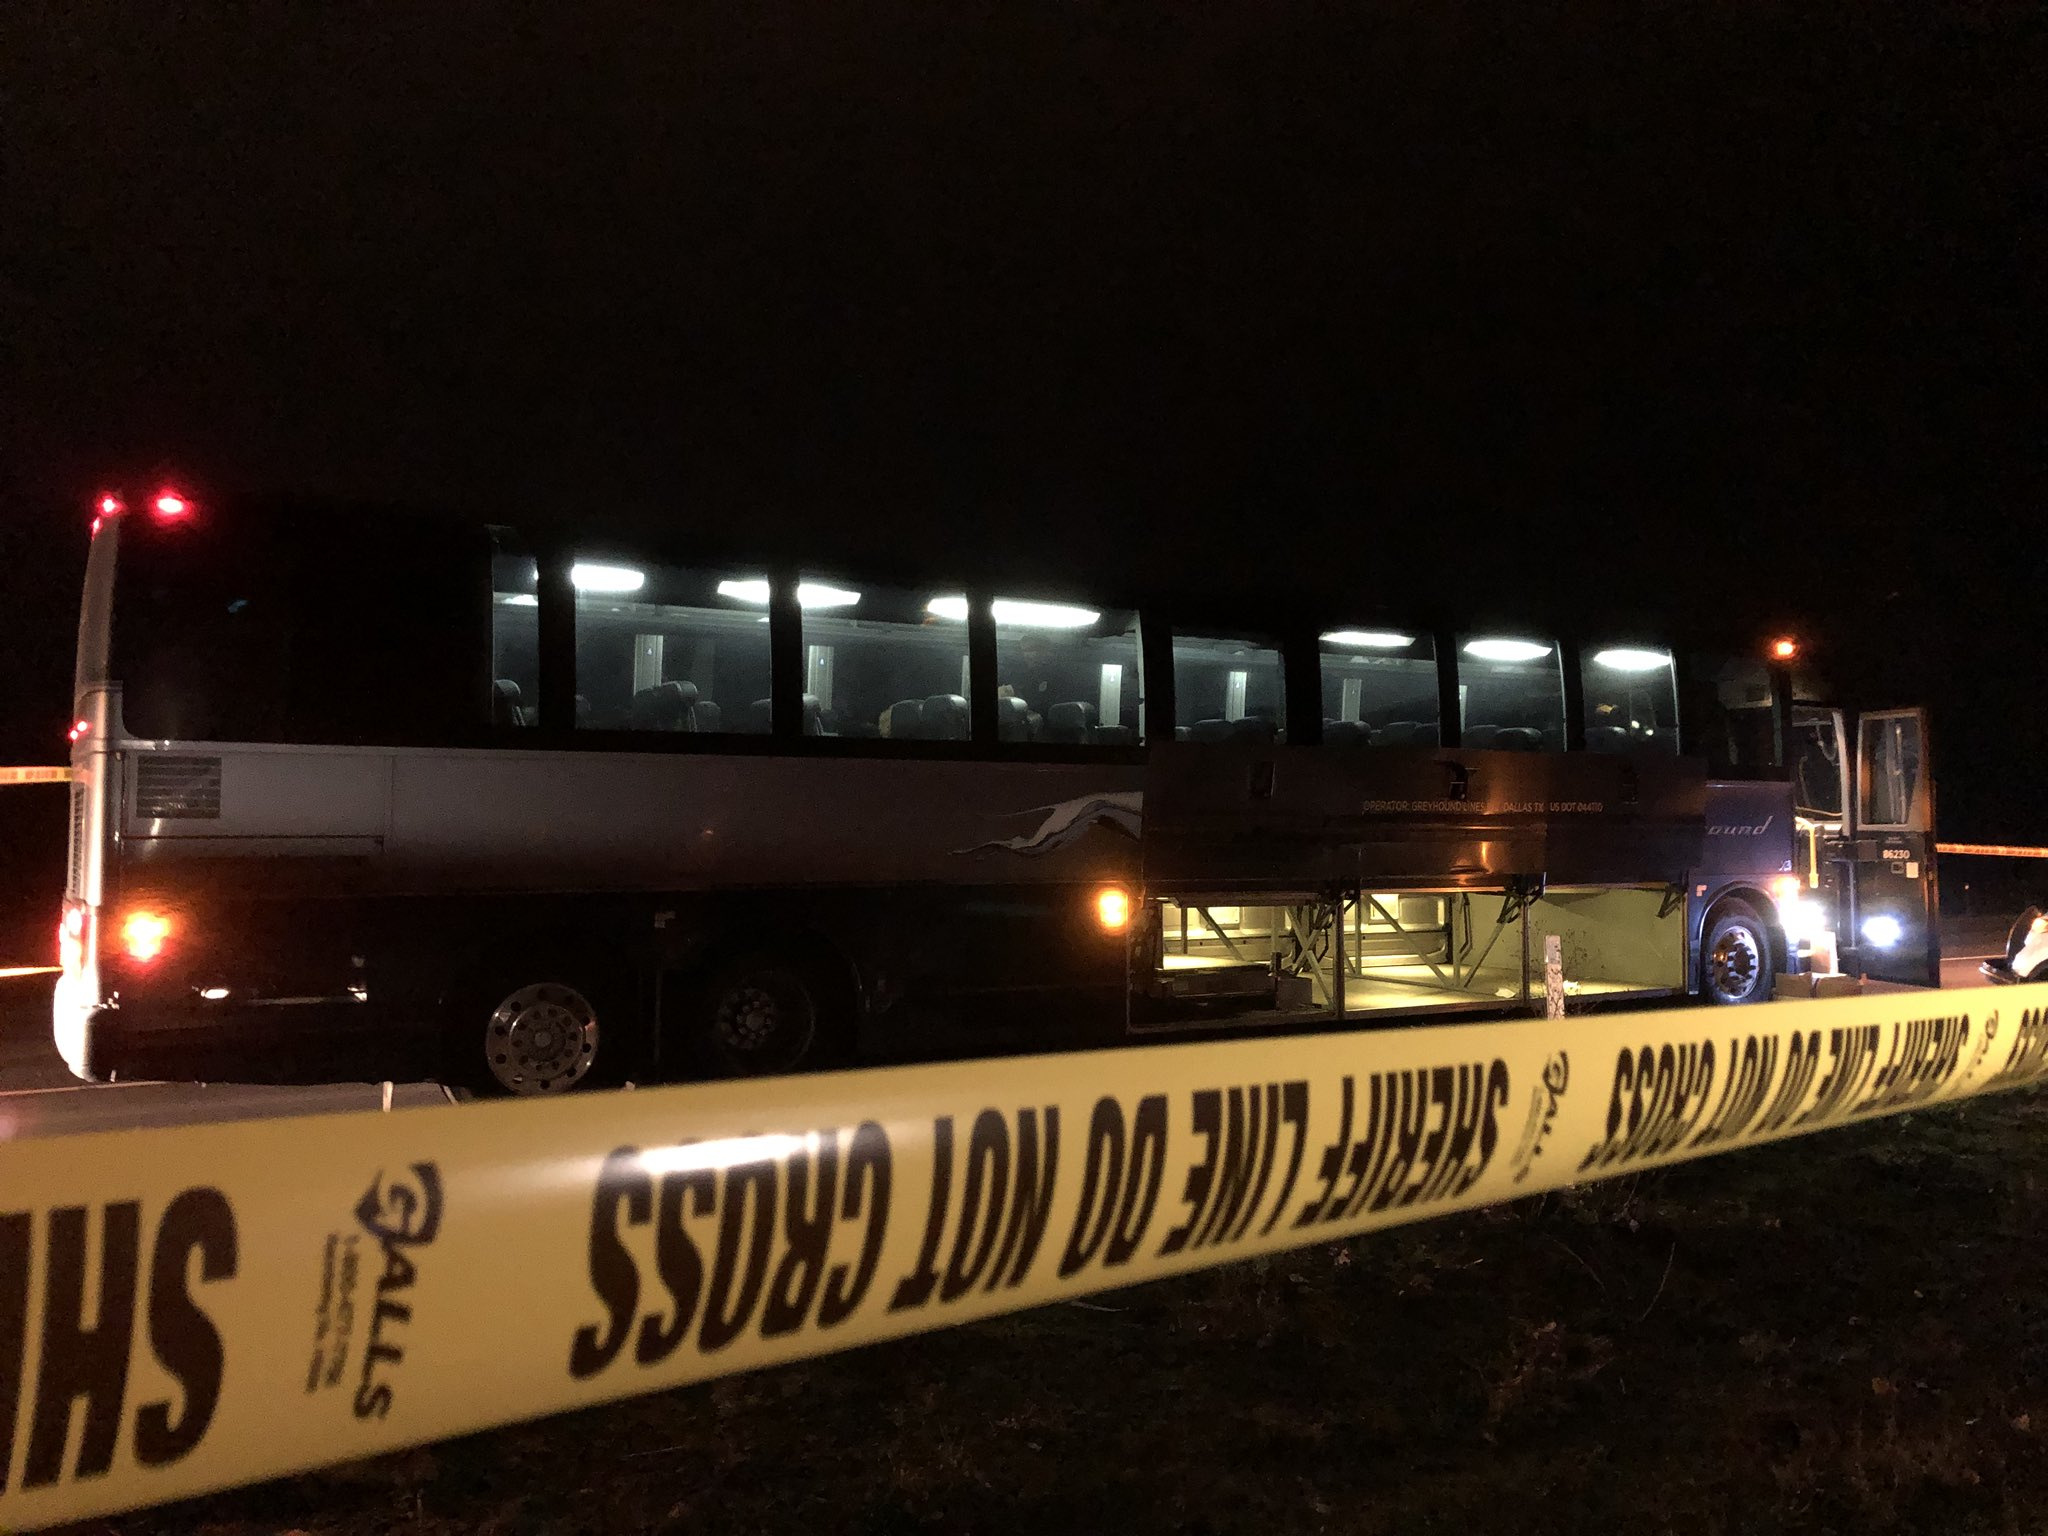 Two people were stabbed on a Greyhound bus near Troutdale the night of Wednesday, Nov. 30, 2017, according to Multnomah County Sheriff's Office. KATU photo{&amp;nbsp;}<p></p>